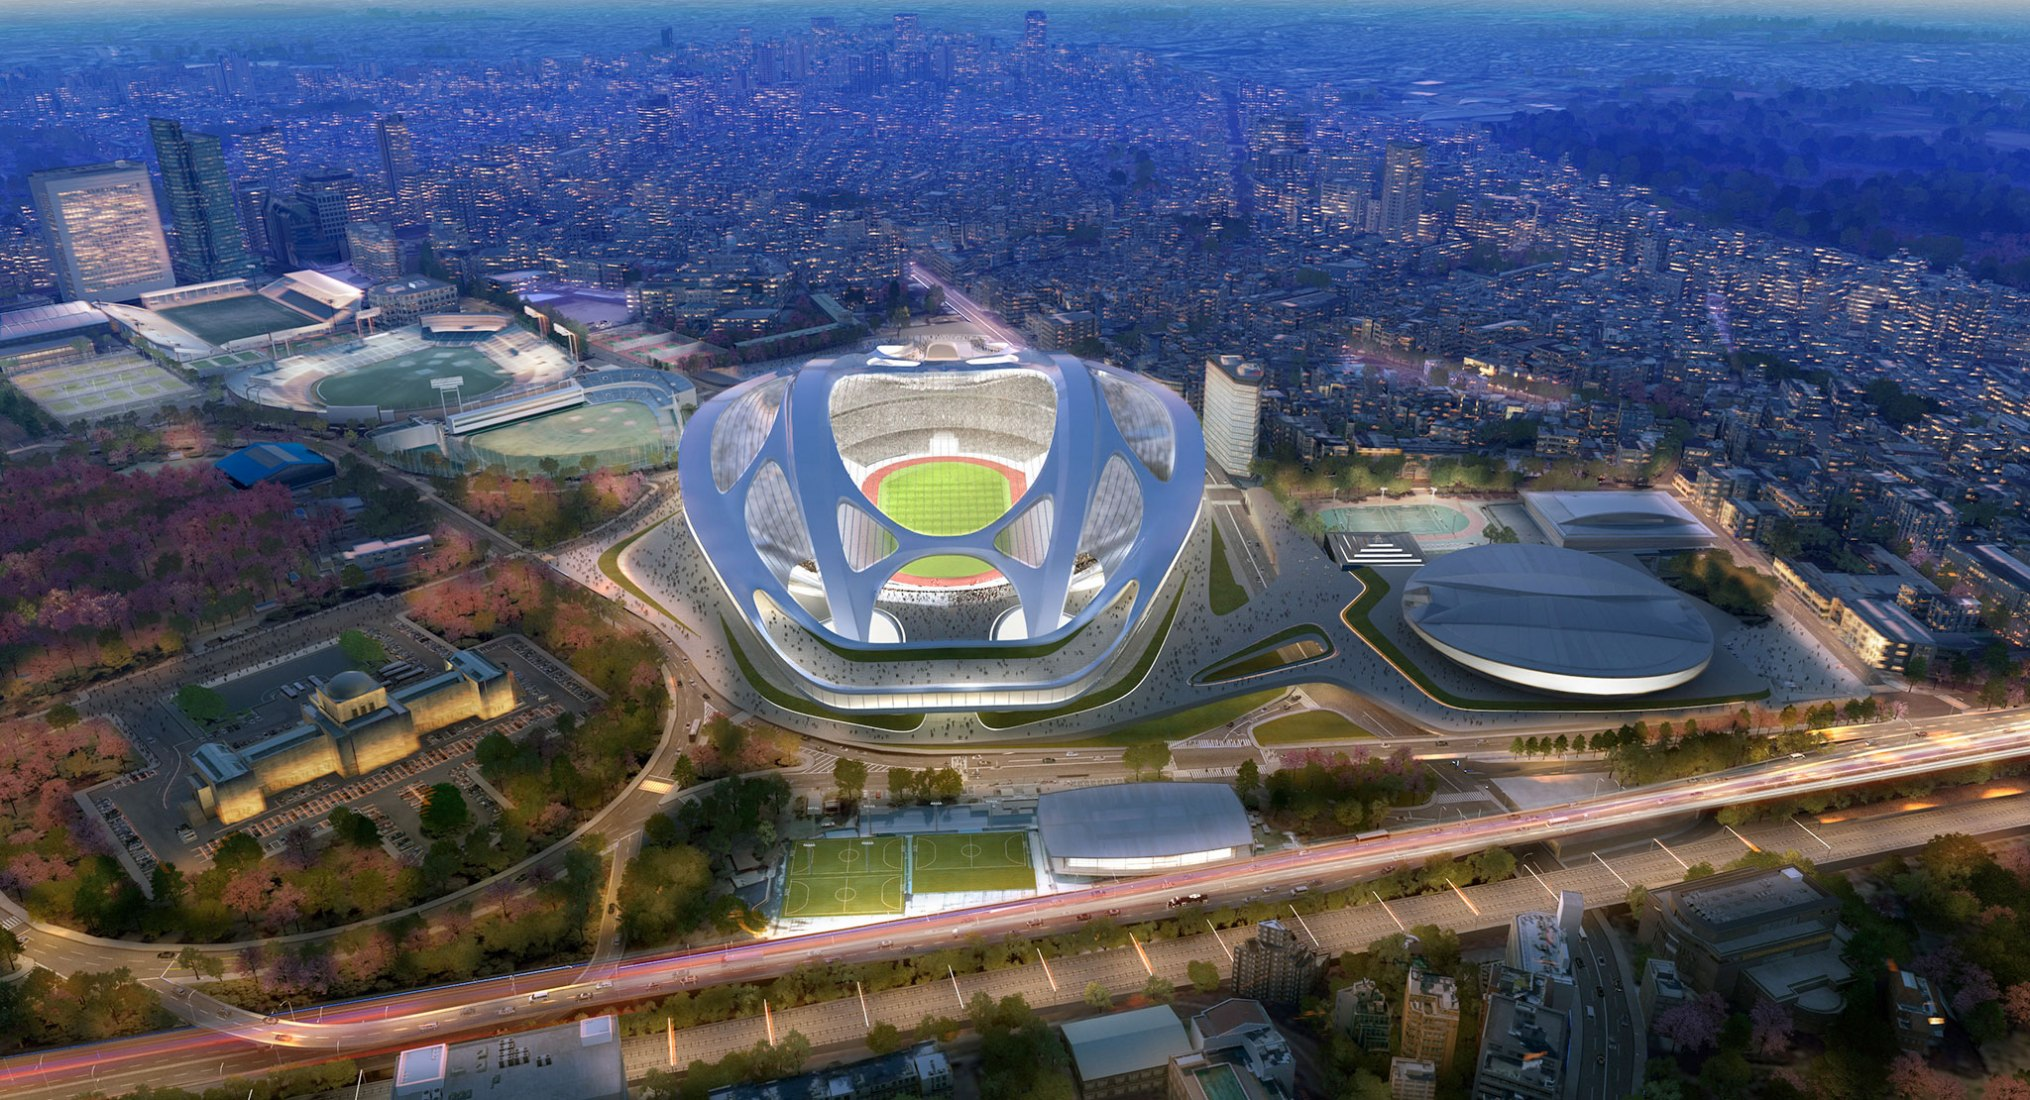 Rendering. New National Stadium by Zaha Hadid.